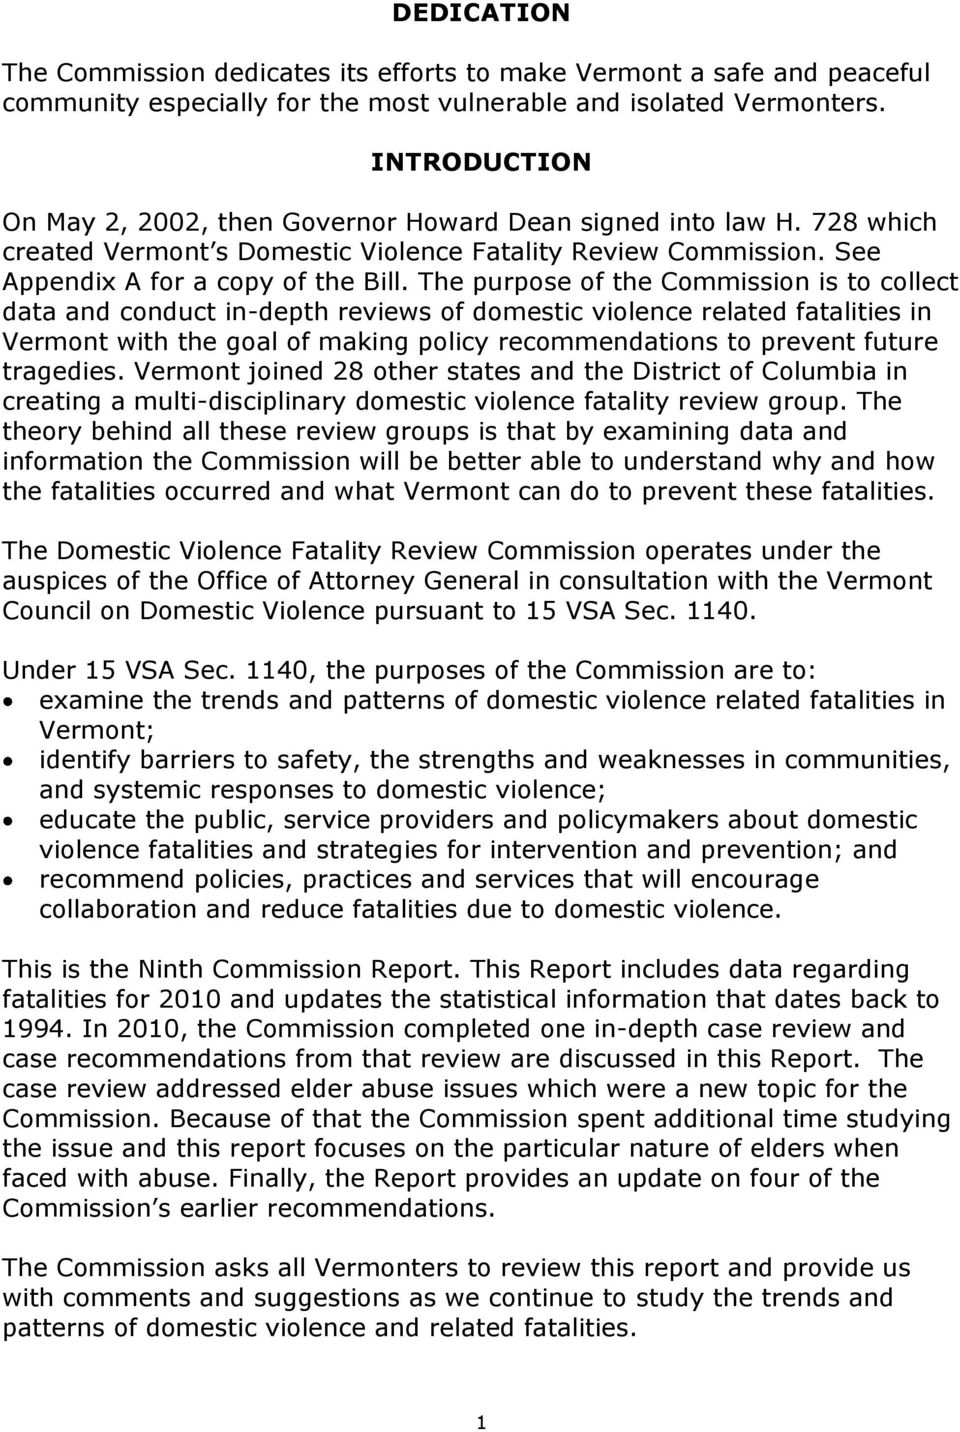 The purpose of the Commission is to collect data and conduct in-depth reviews of domestic violence related fatalities in Vermont with the goal of making policy recommendations to prevent future